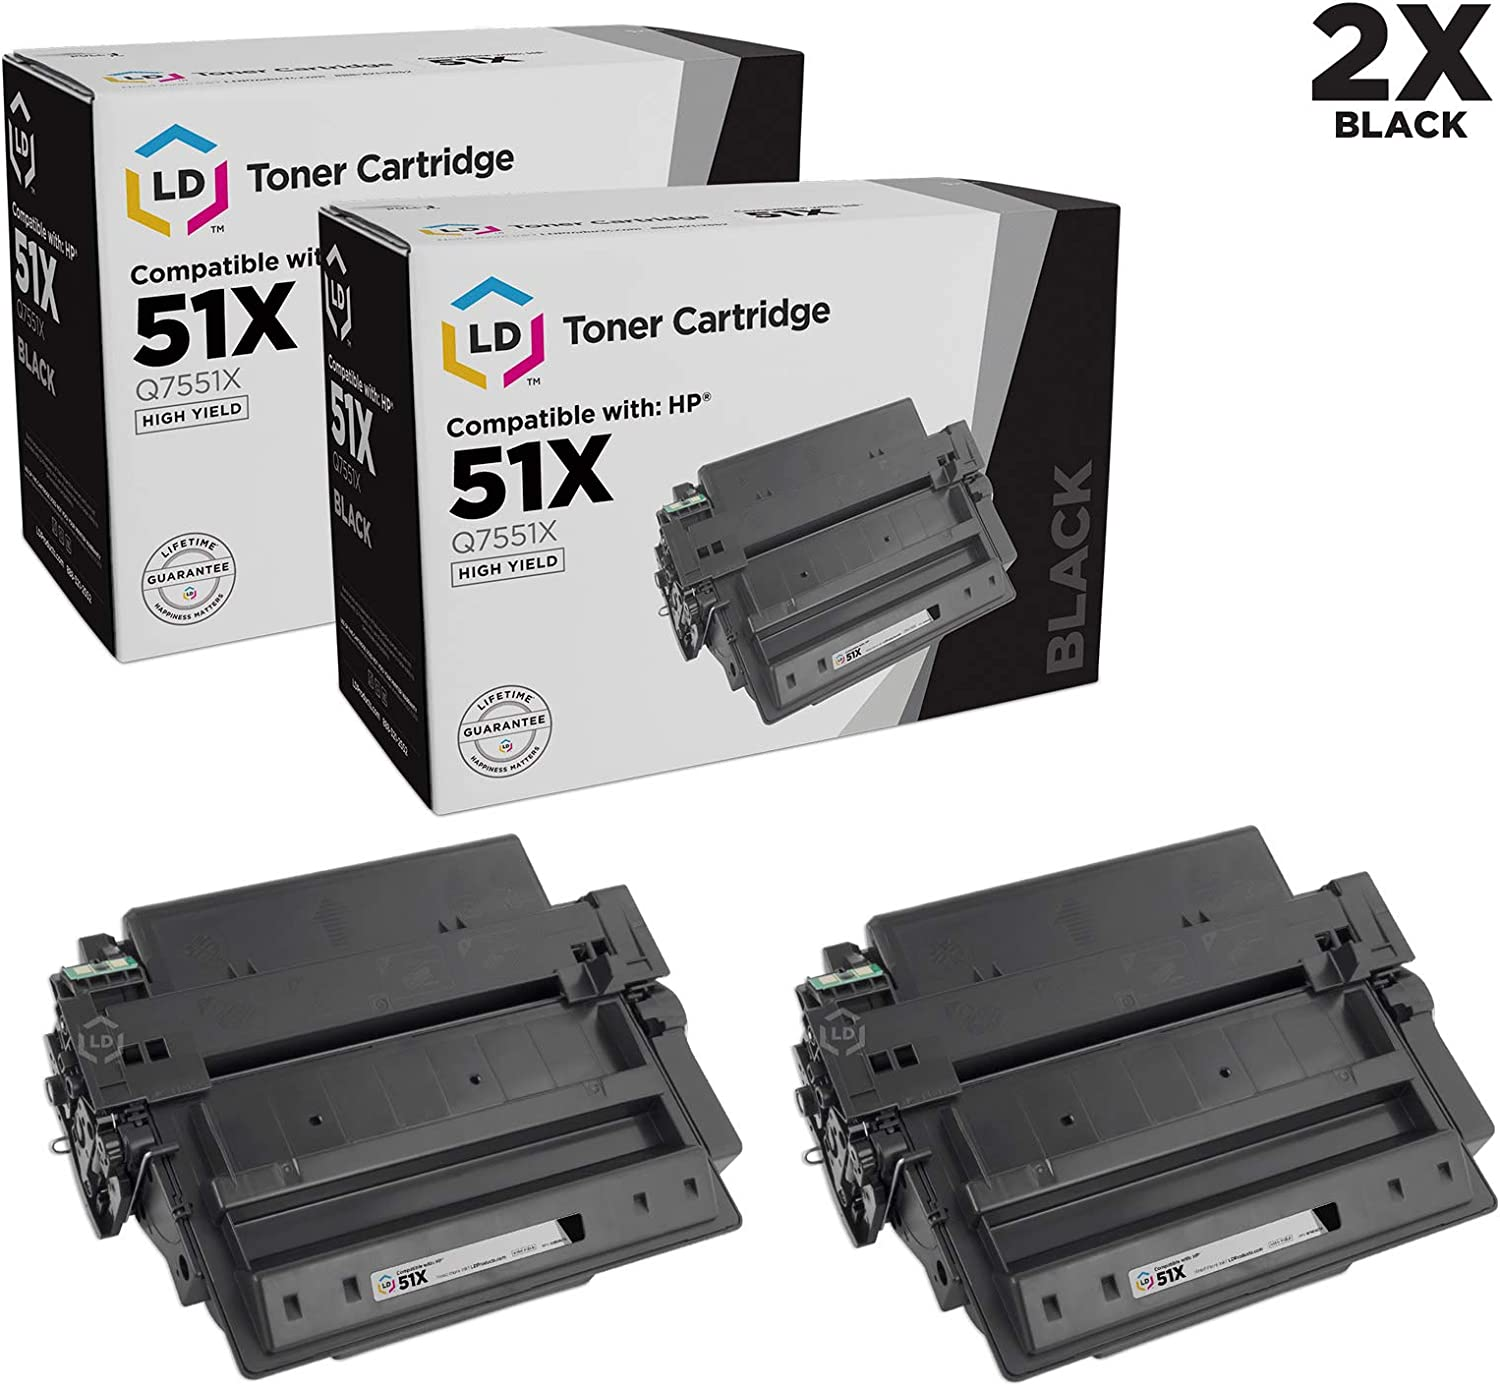 LD Compatible Toner Cartridge Replacement for HP 51X Q7551X High Yield (Black, 2-Pack)